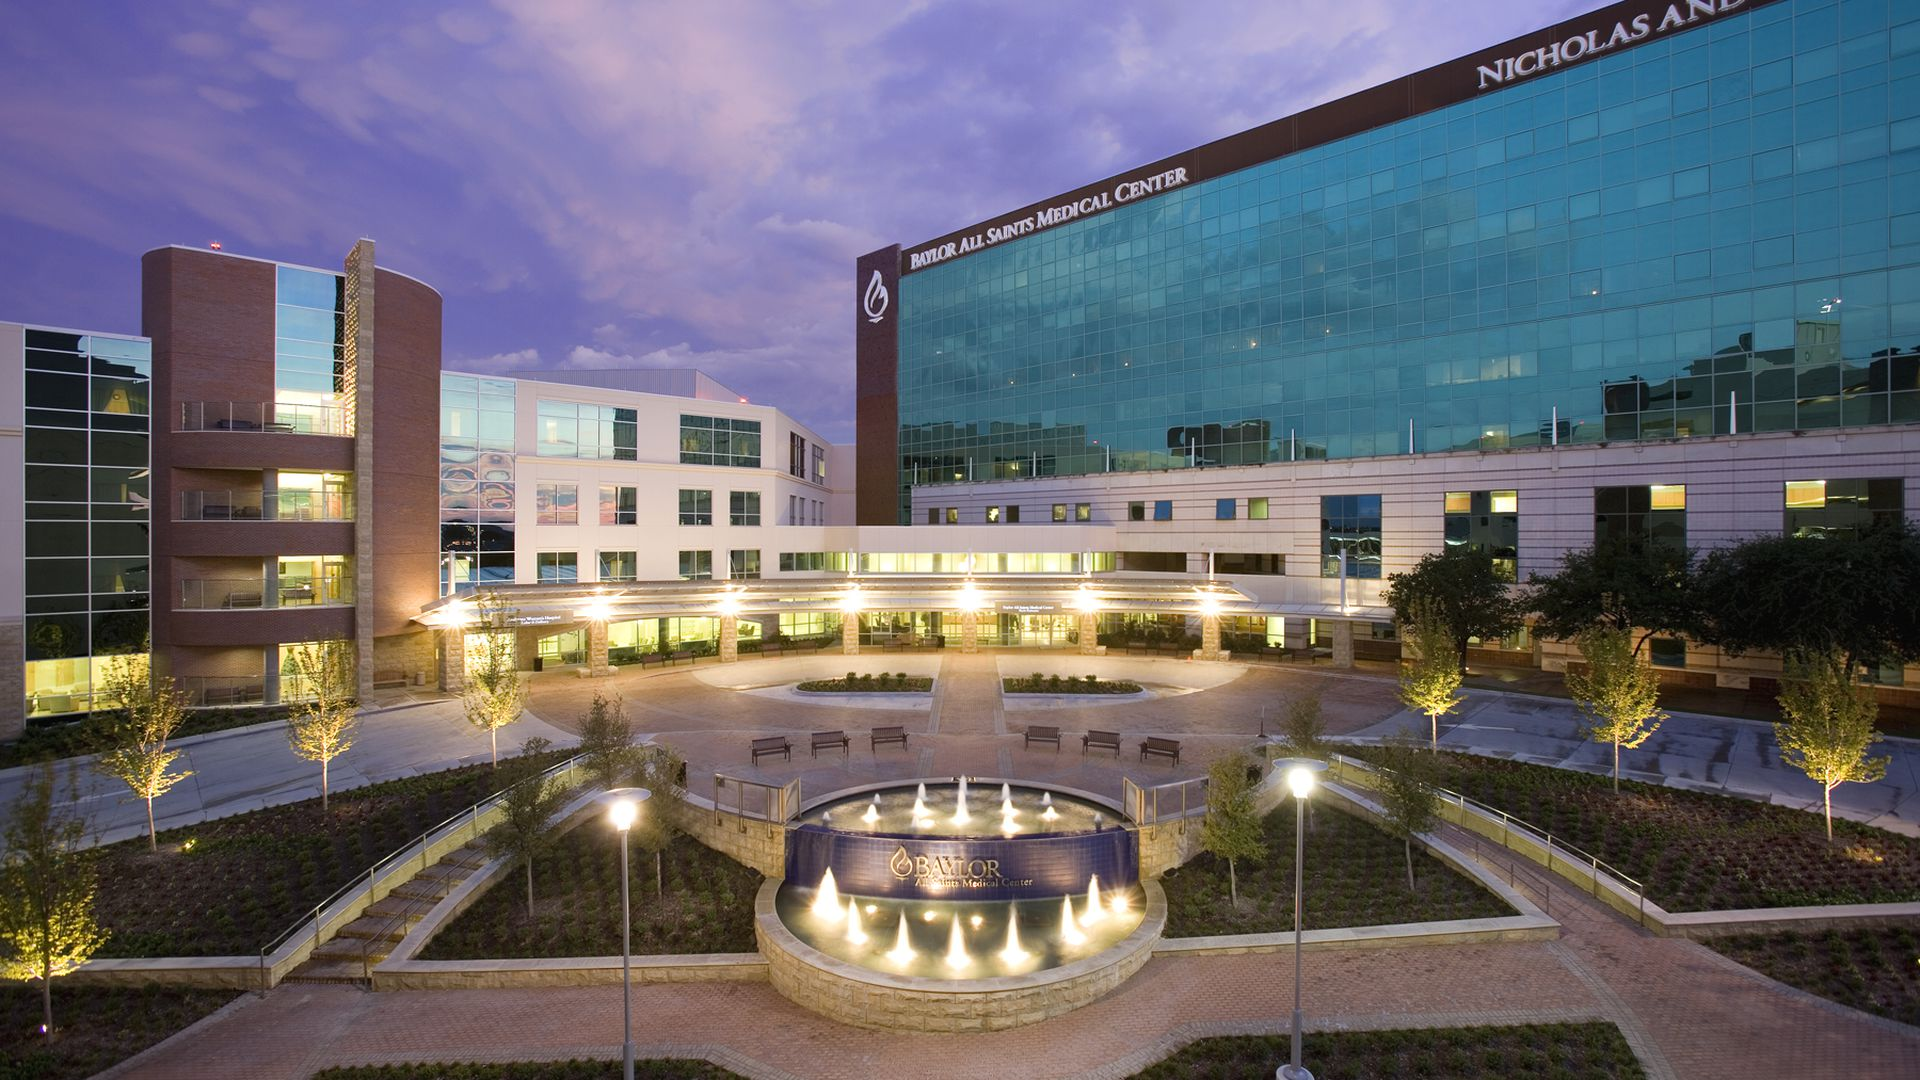 A Baylor Scott & White hospital in Texas at twilight.